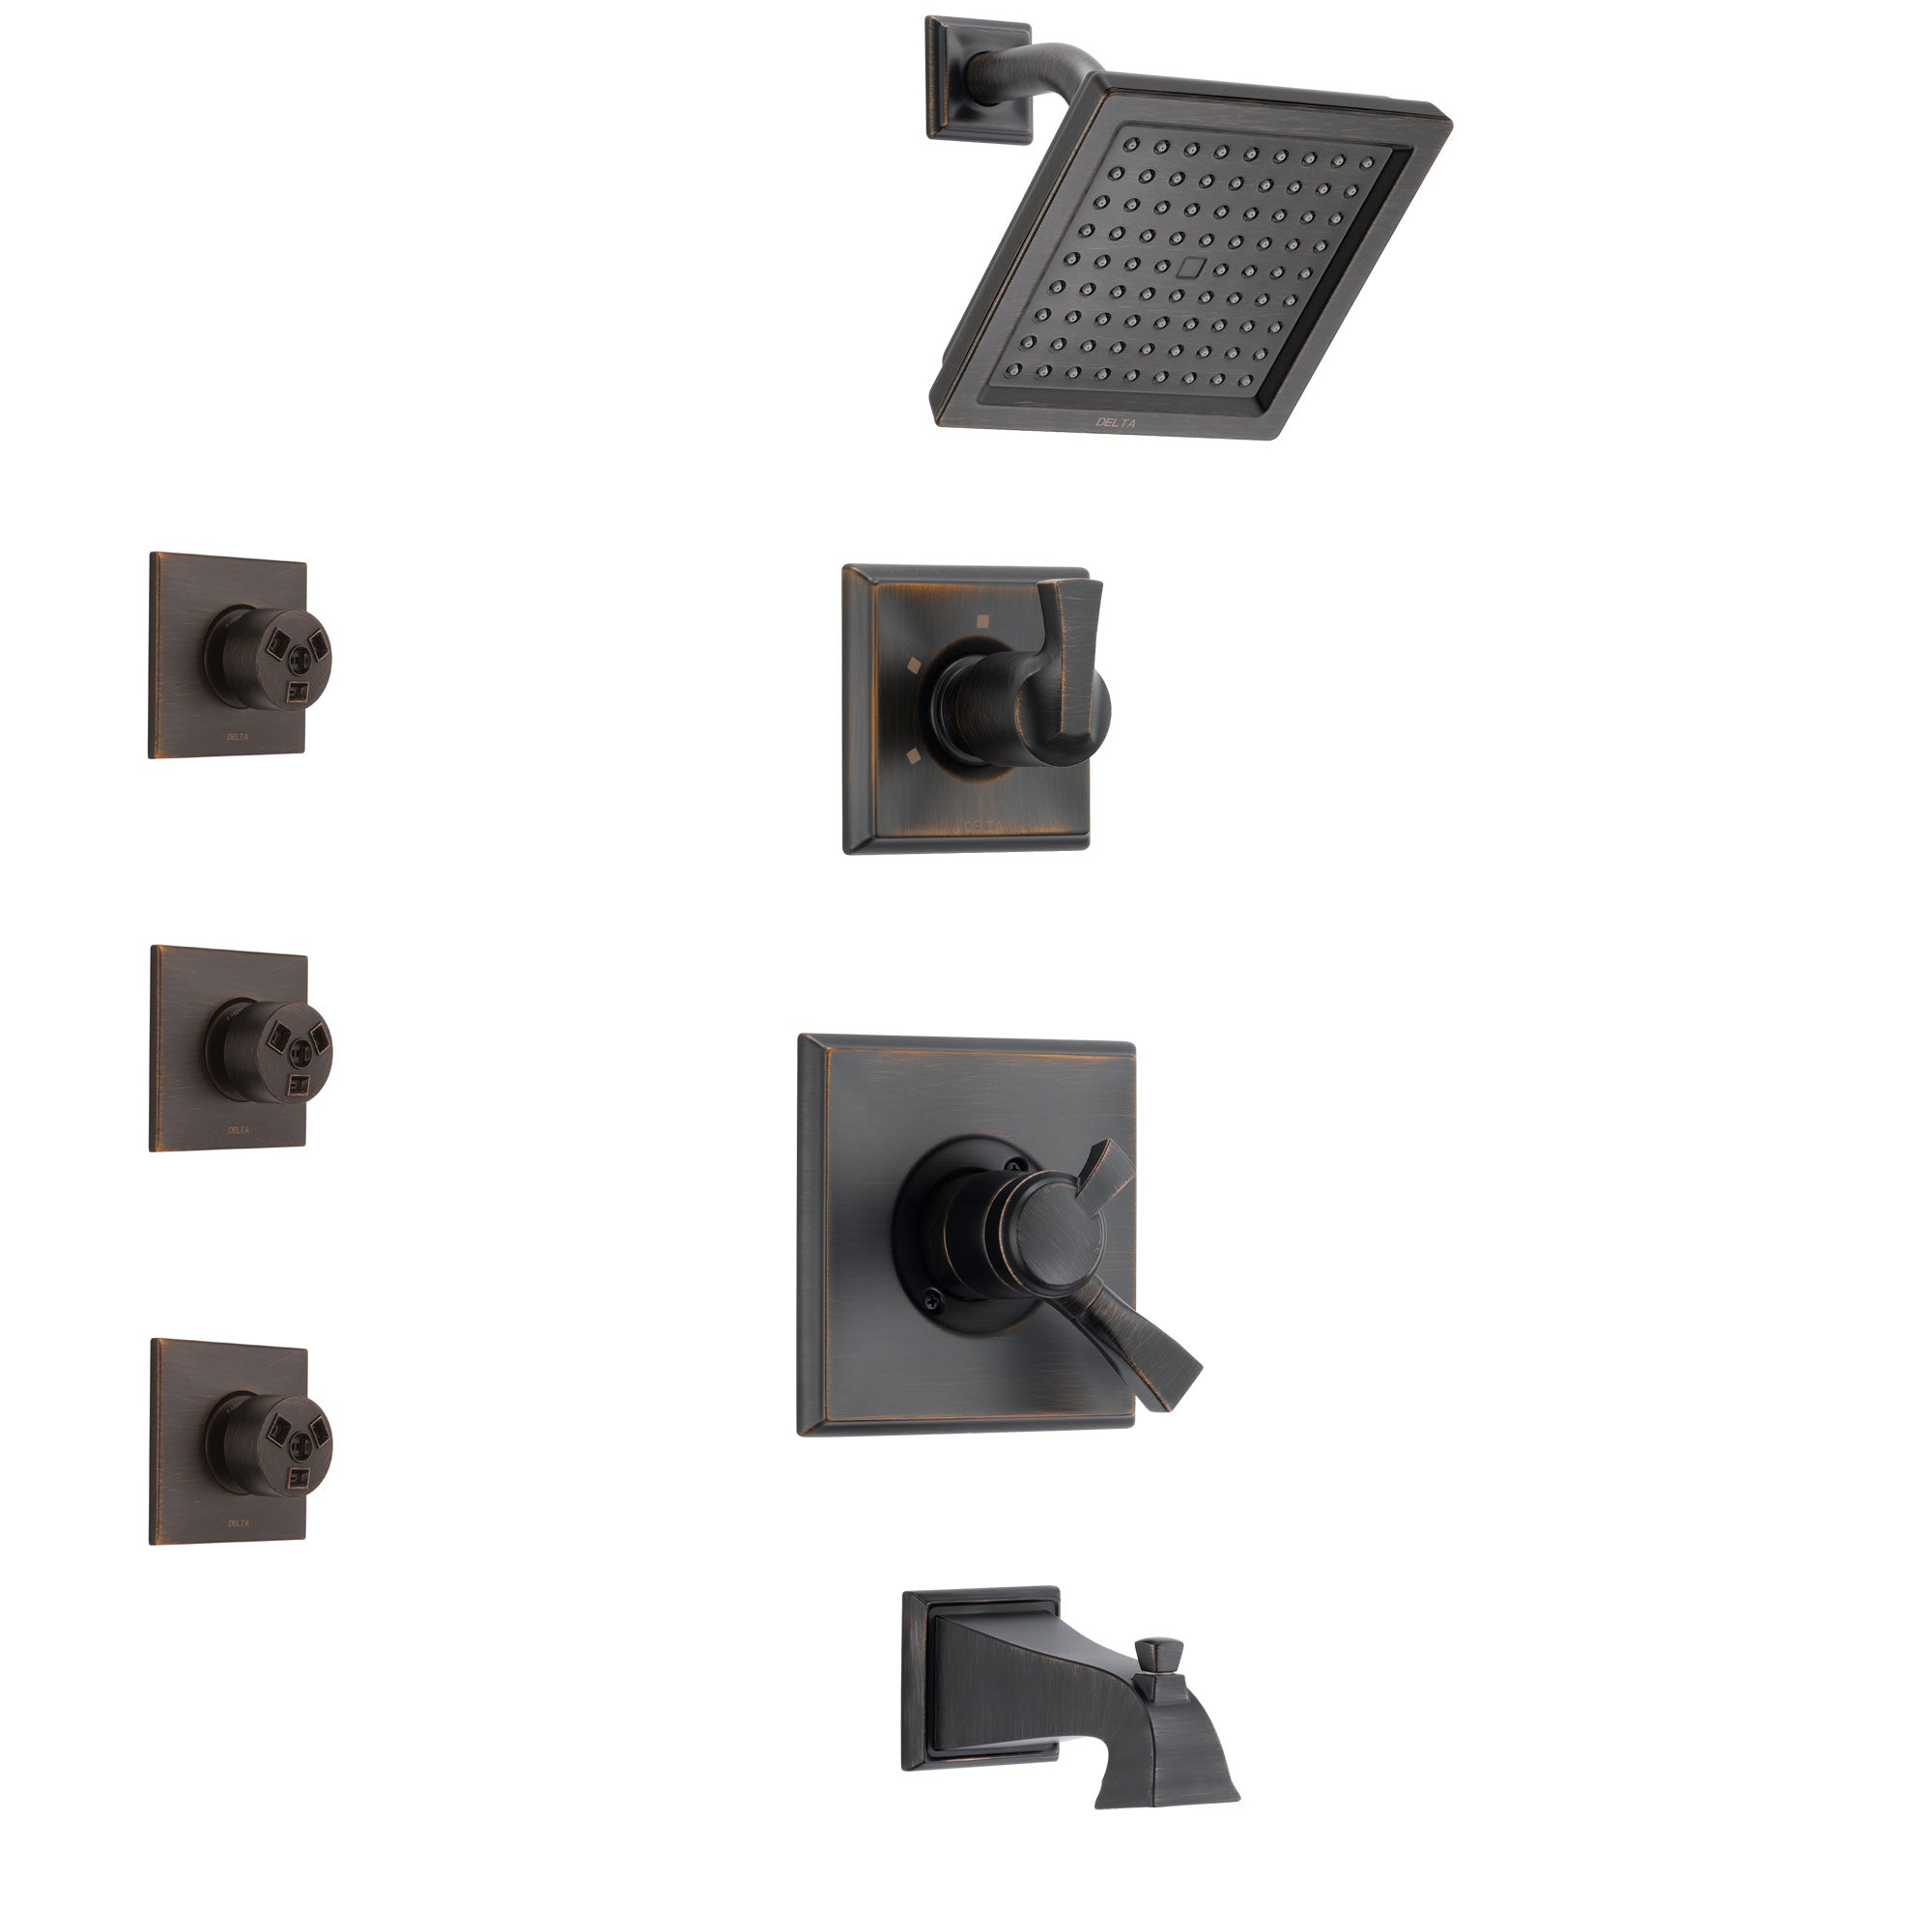 Delta Dryden Venetian Bronze Finish Tub and Shower System with Dual Control Handle, 3-Setting Diverter, Showerhead, and 3 Body Sprays SS174511RB1